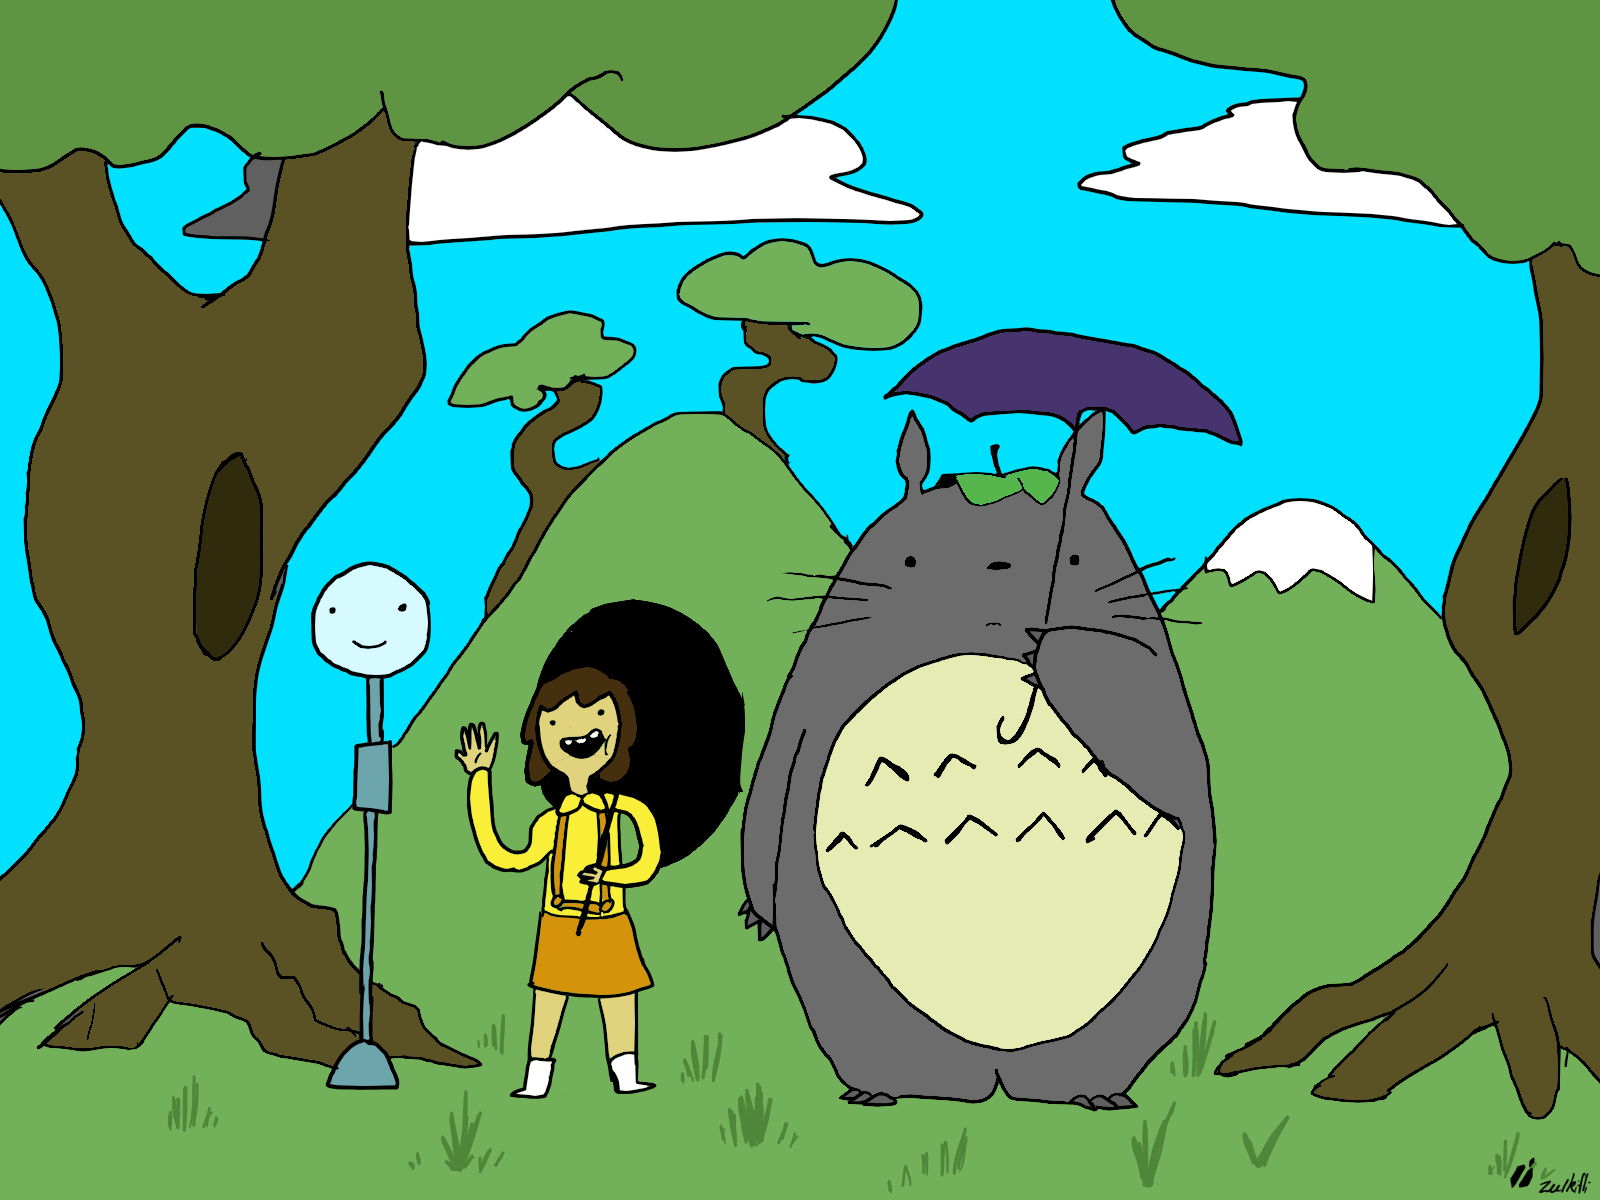 my neighbour totoro+adventure time... can't think of a witty title